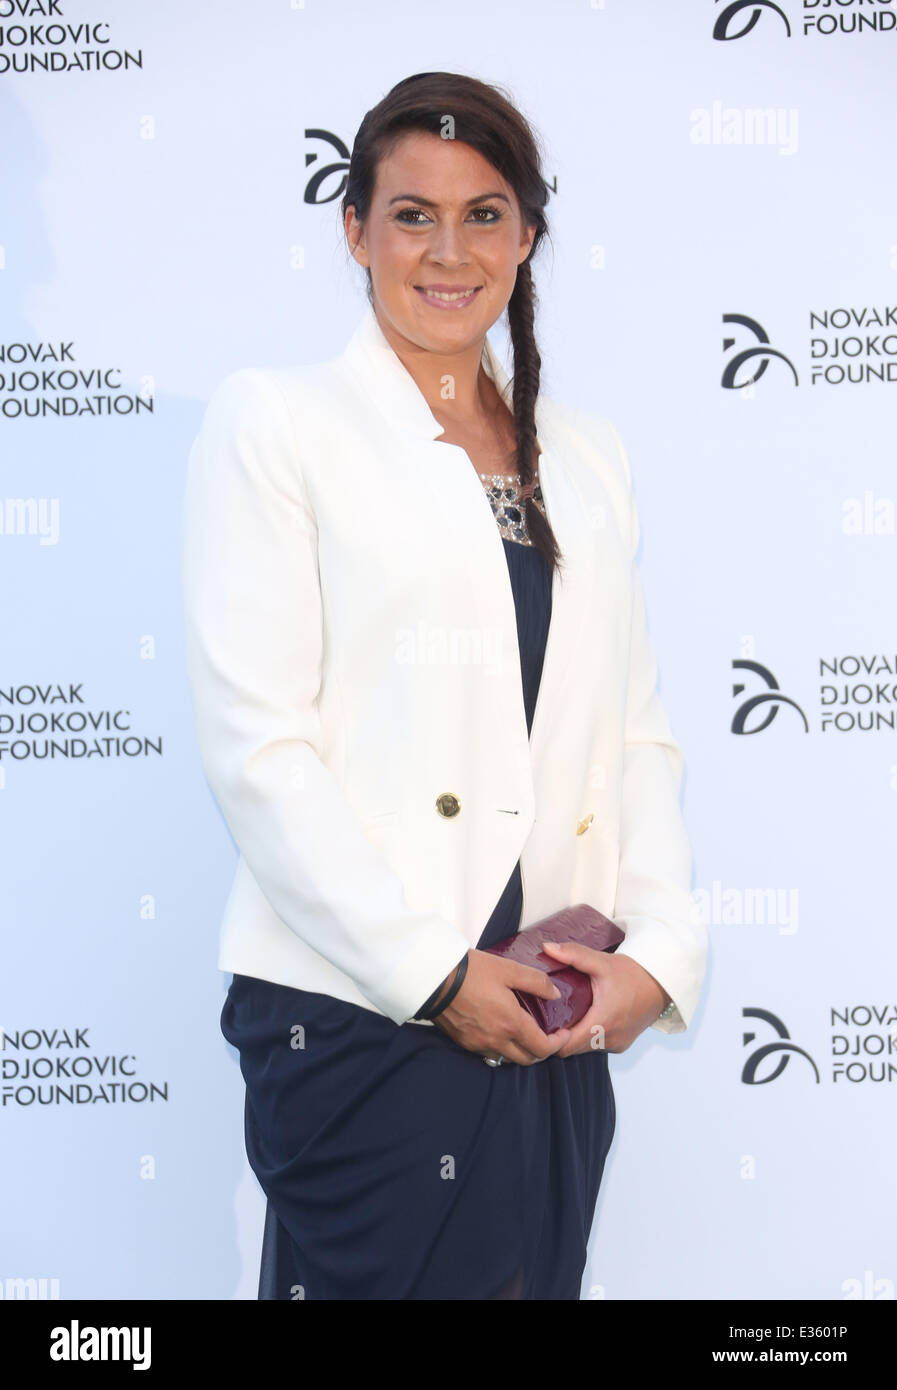 Novak Djokovic Foundation Event held at the Roundhouse - Arrivals  Featuring: Marion Bartoli Where: London, United - Stock Image